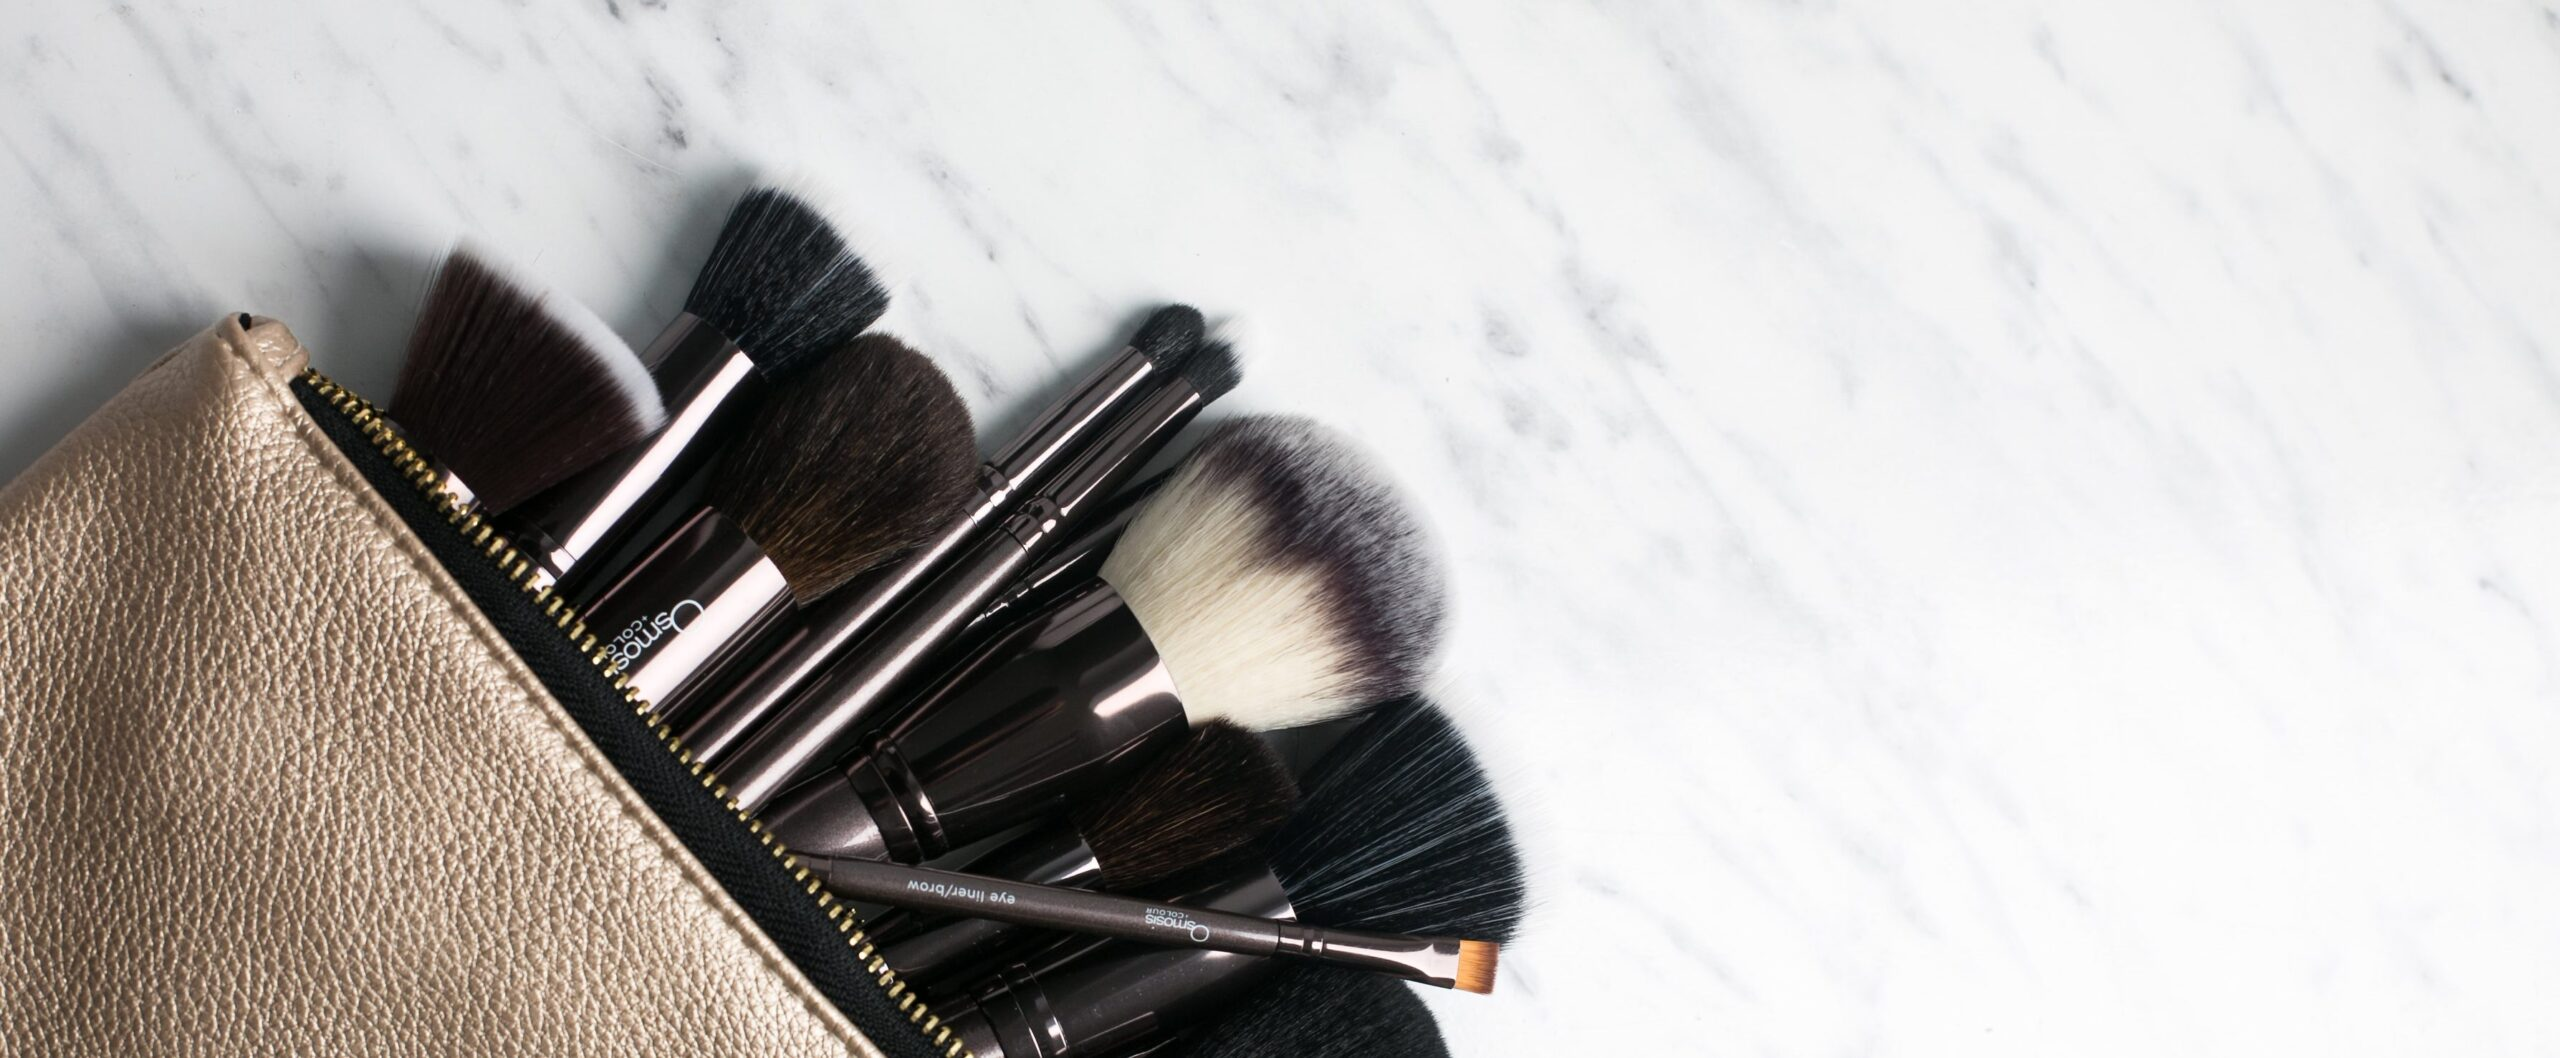 Makeup tricks for looking younger